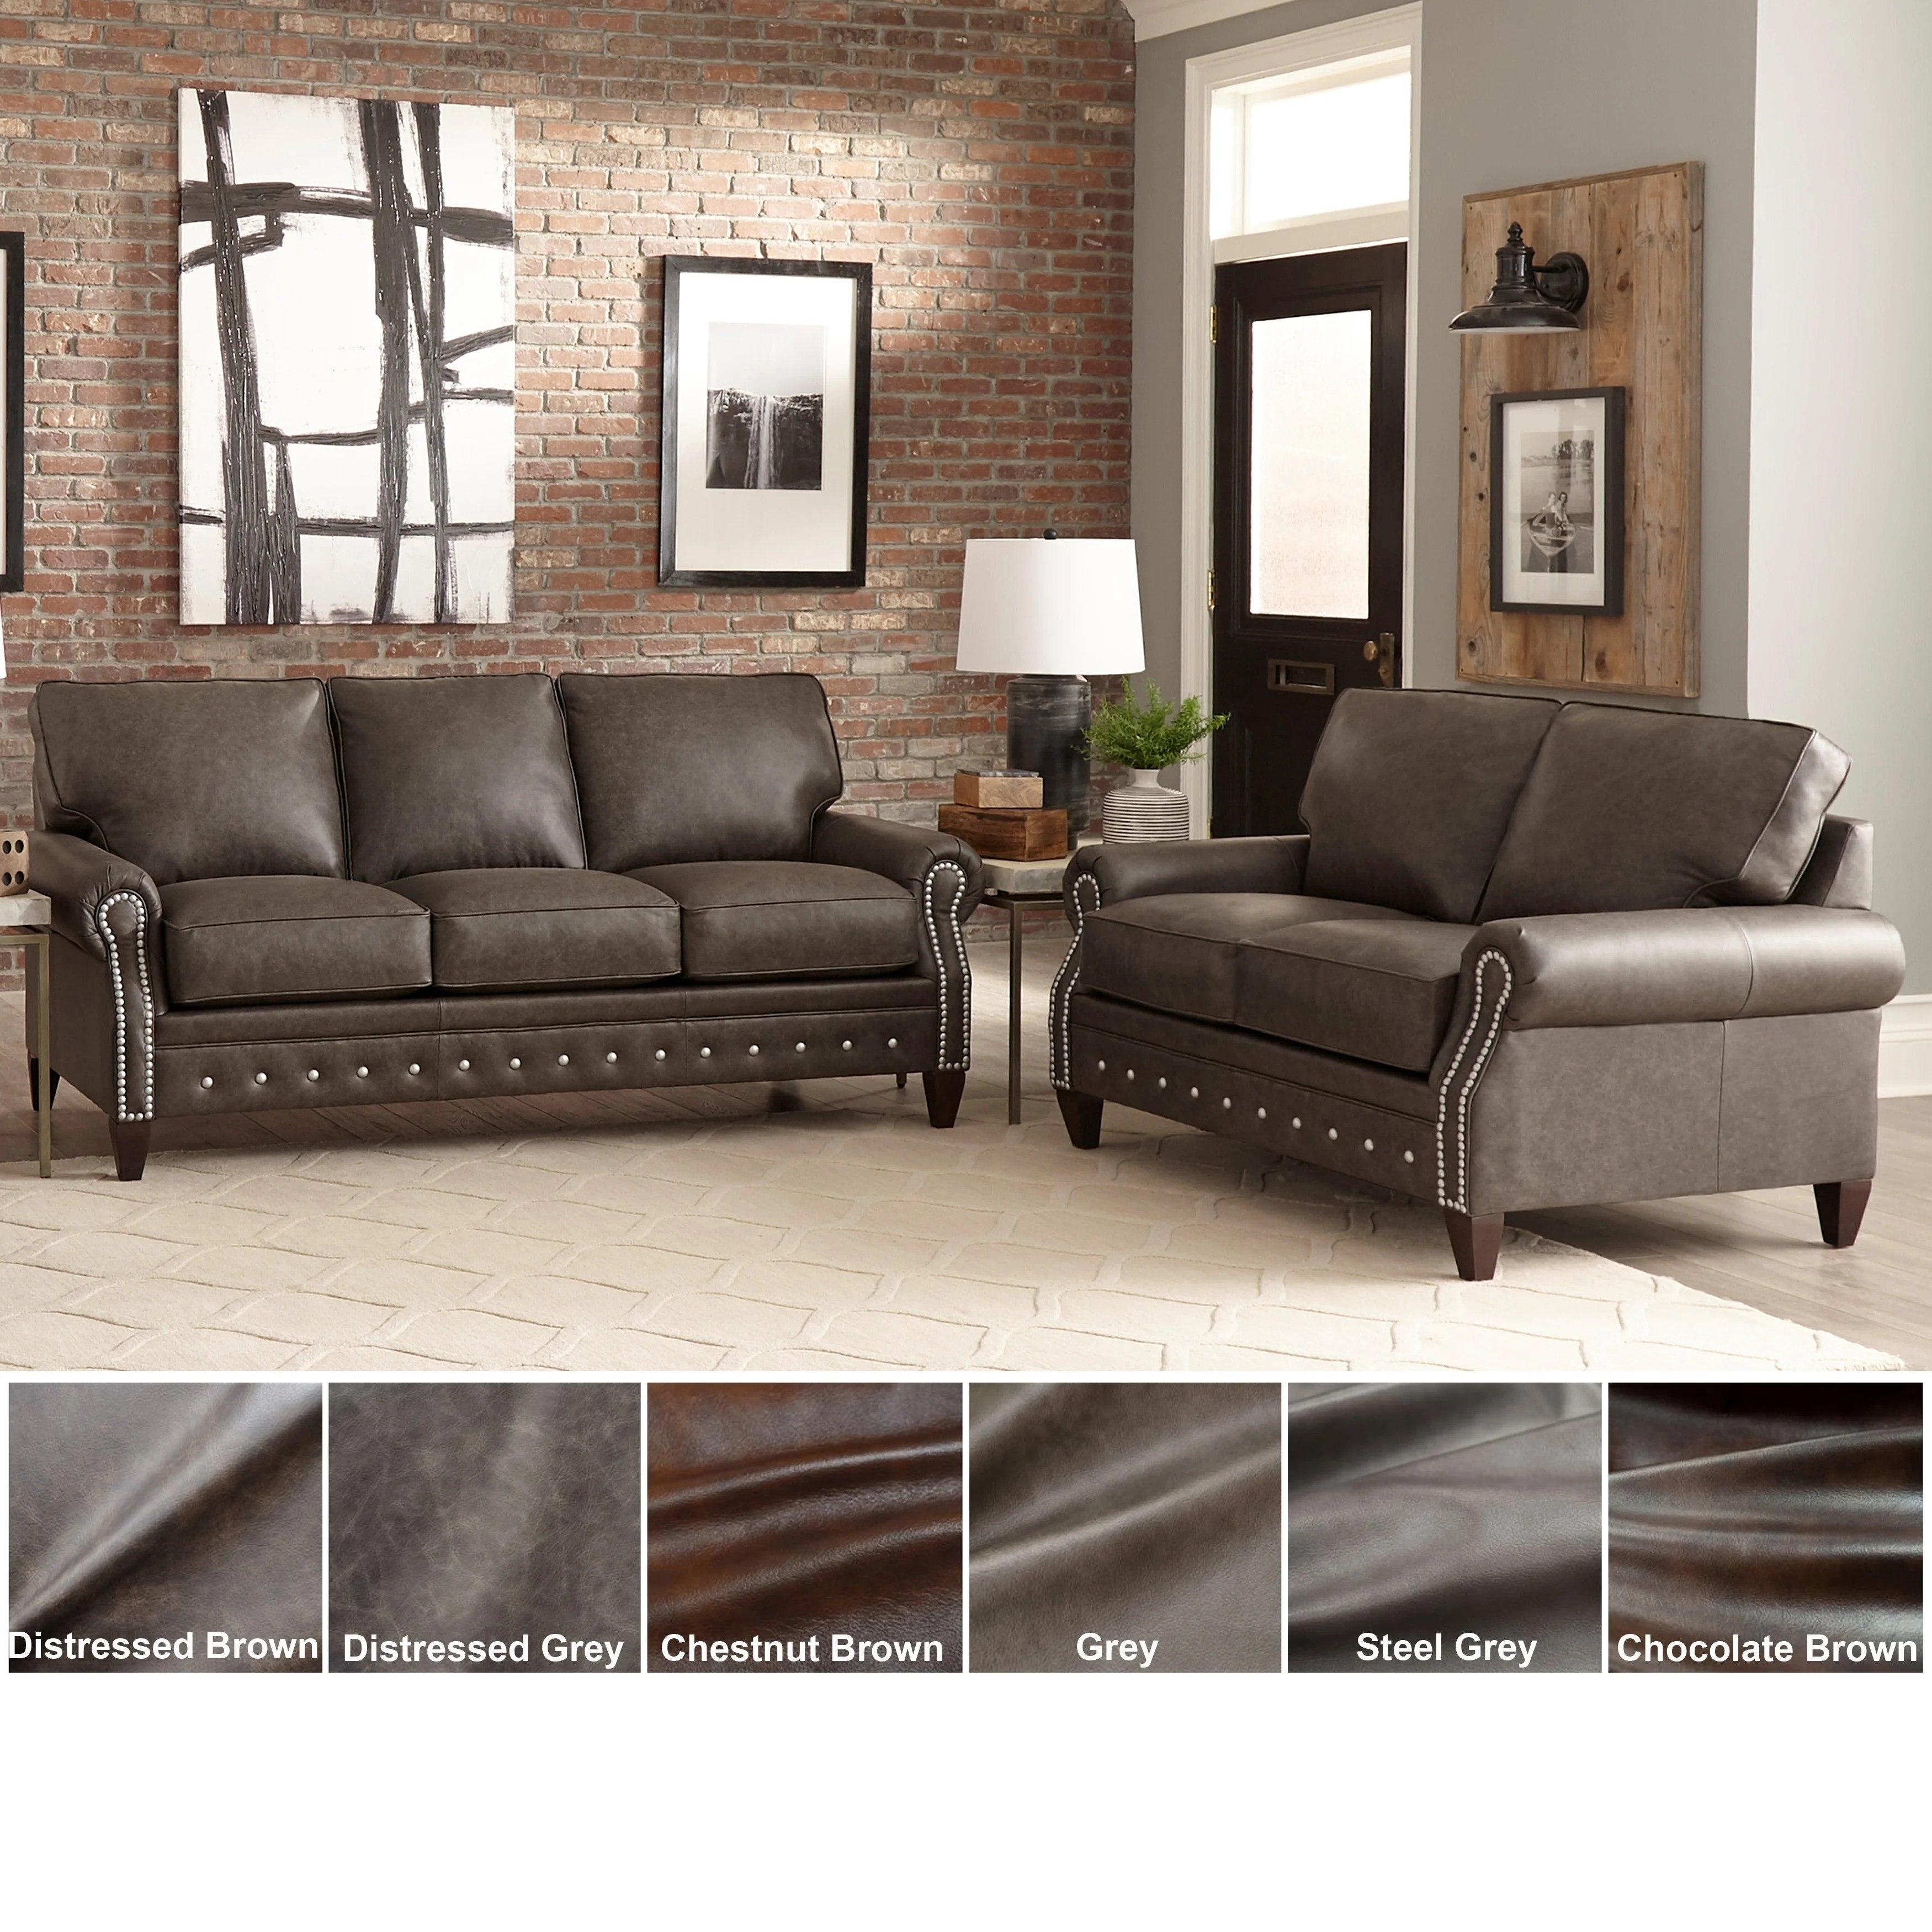 Caminetto Grill Chianciano Leather Couch Made In Usa